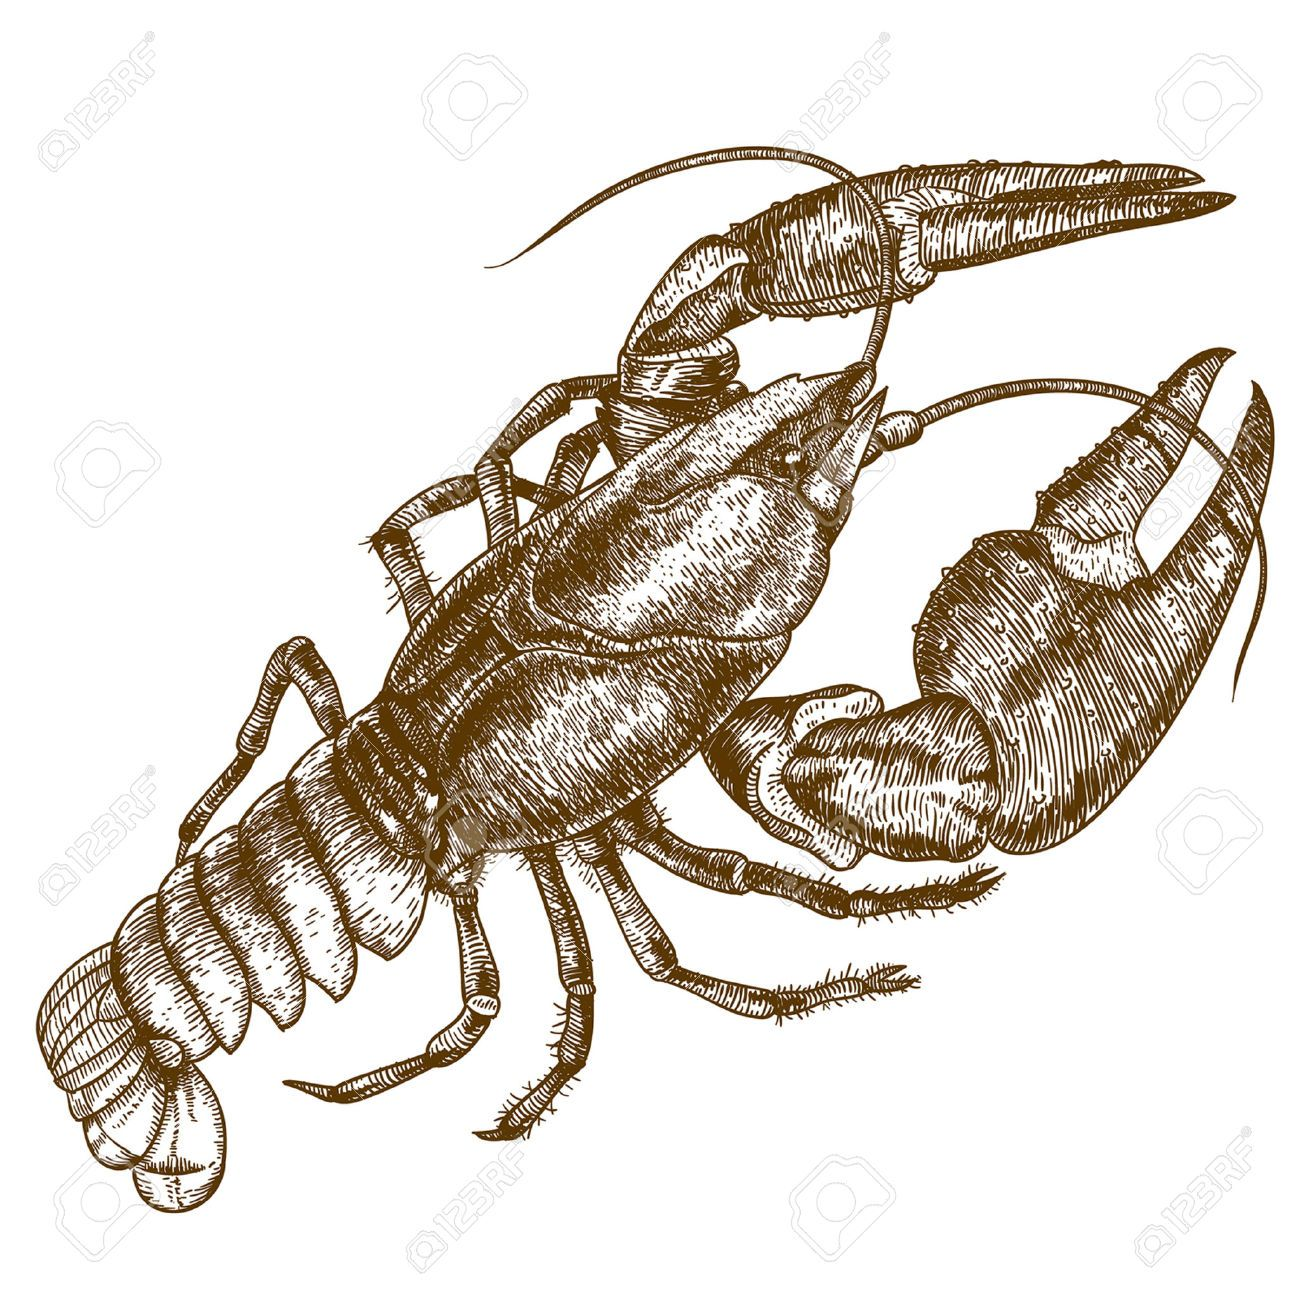 Crawfish clipart yabbie. Stock illustrations cliparts and